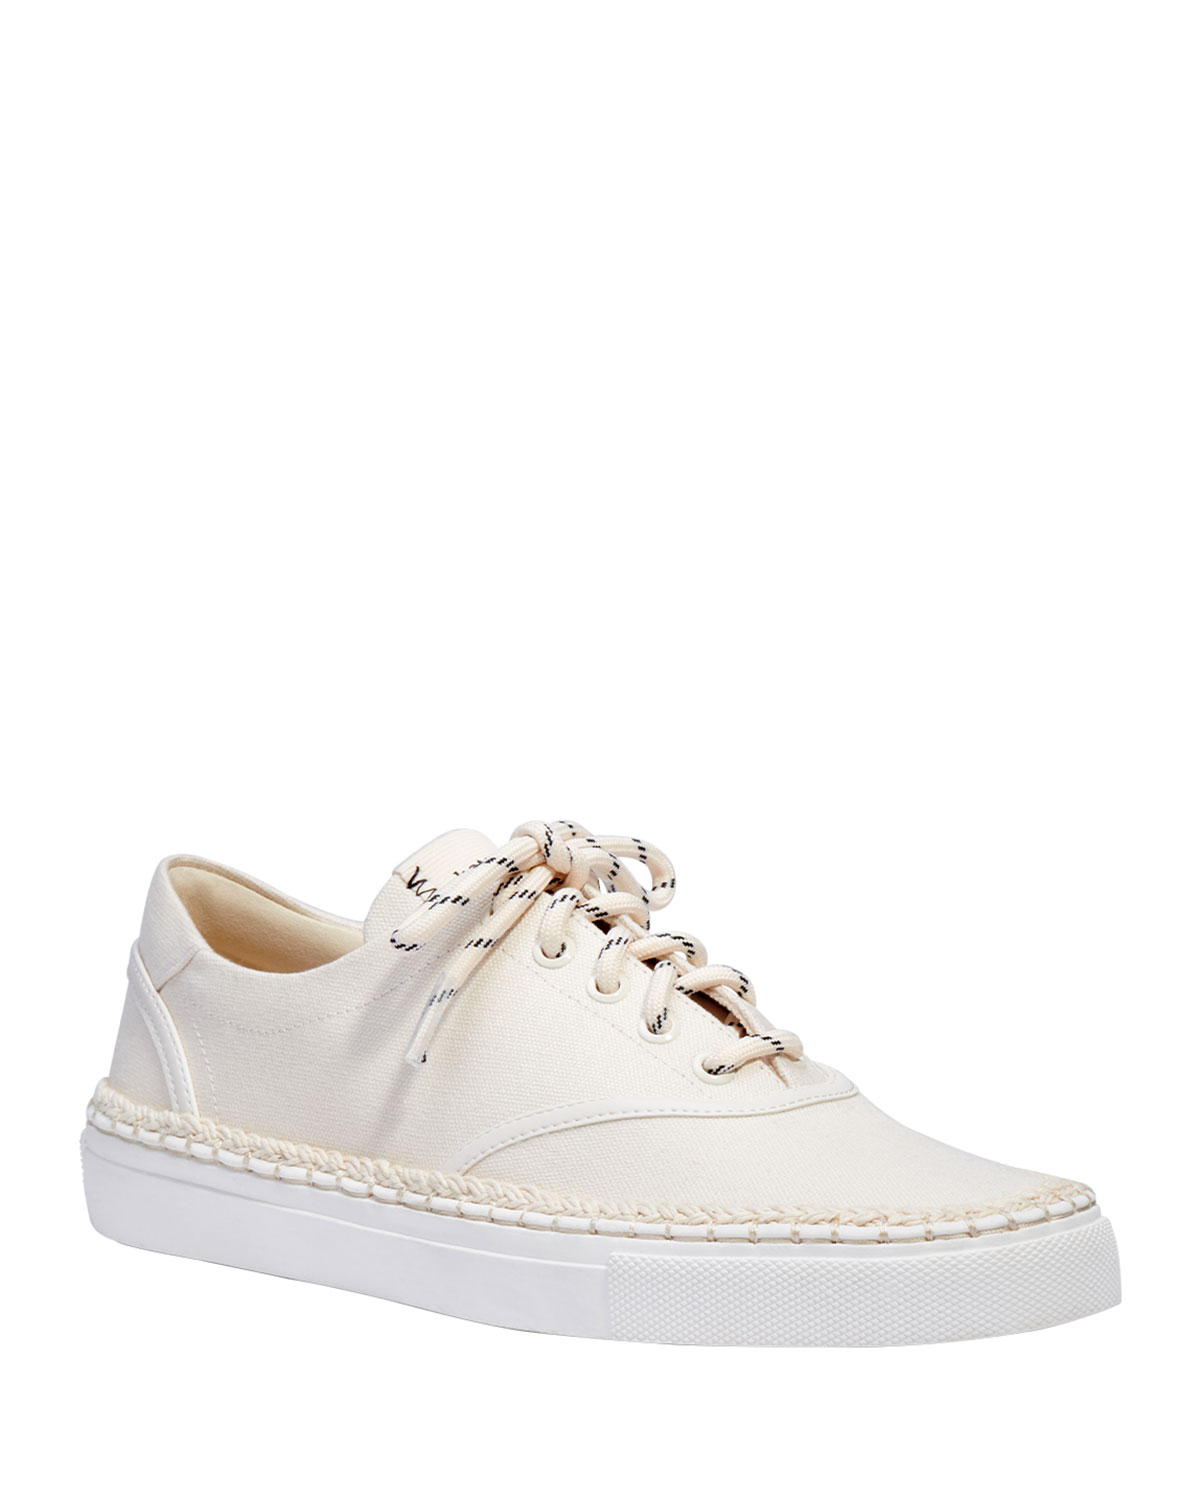 Kate Spade Canvases BOAT PARTY CANVAS FASHION SNEAKERS